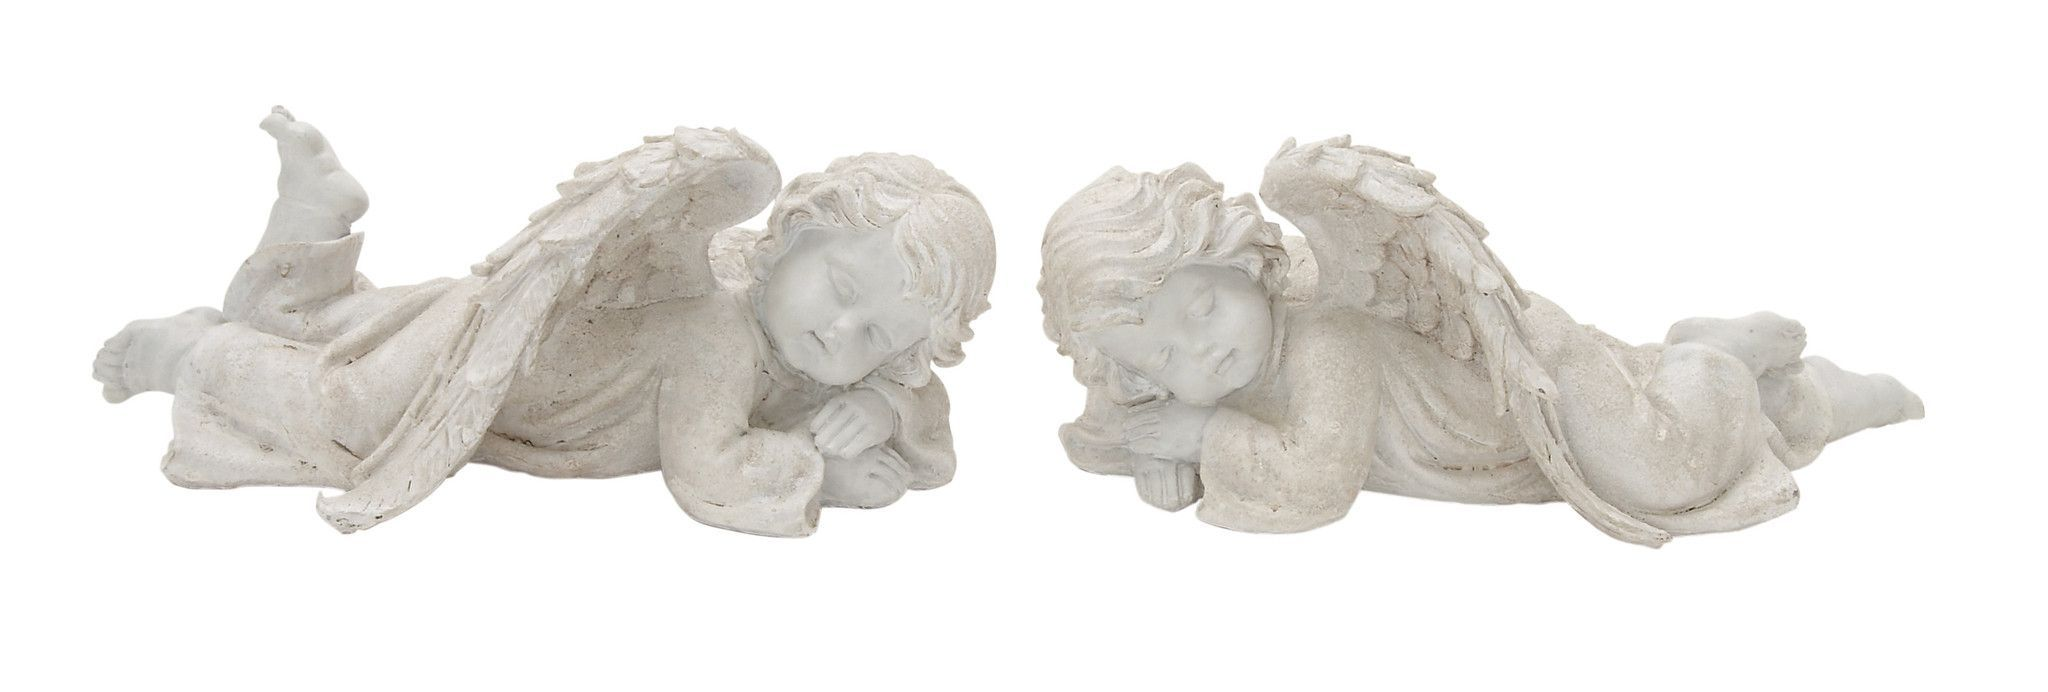 "Endearing Polyresin Angel Set Of 2 13"""" 12""""W"